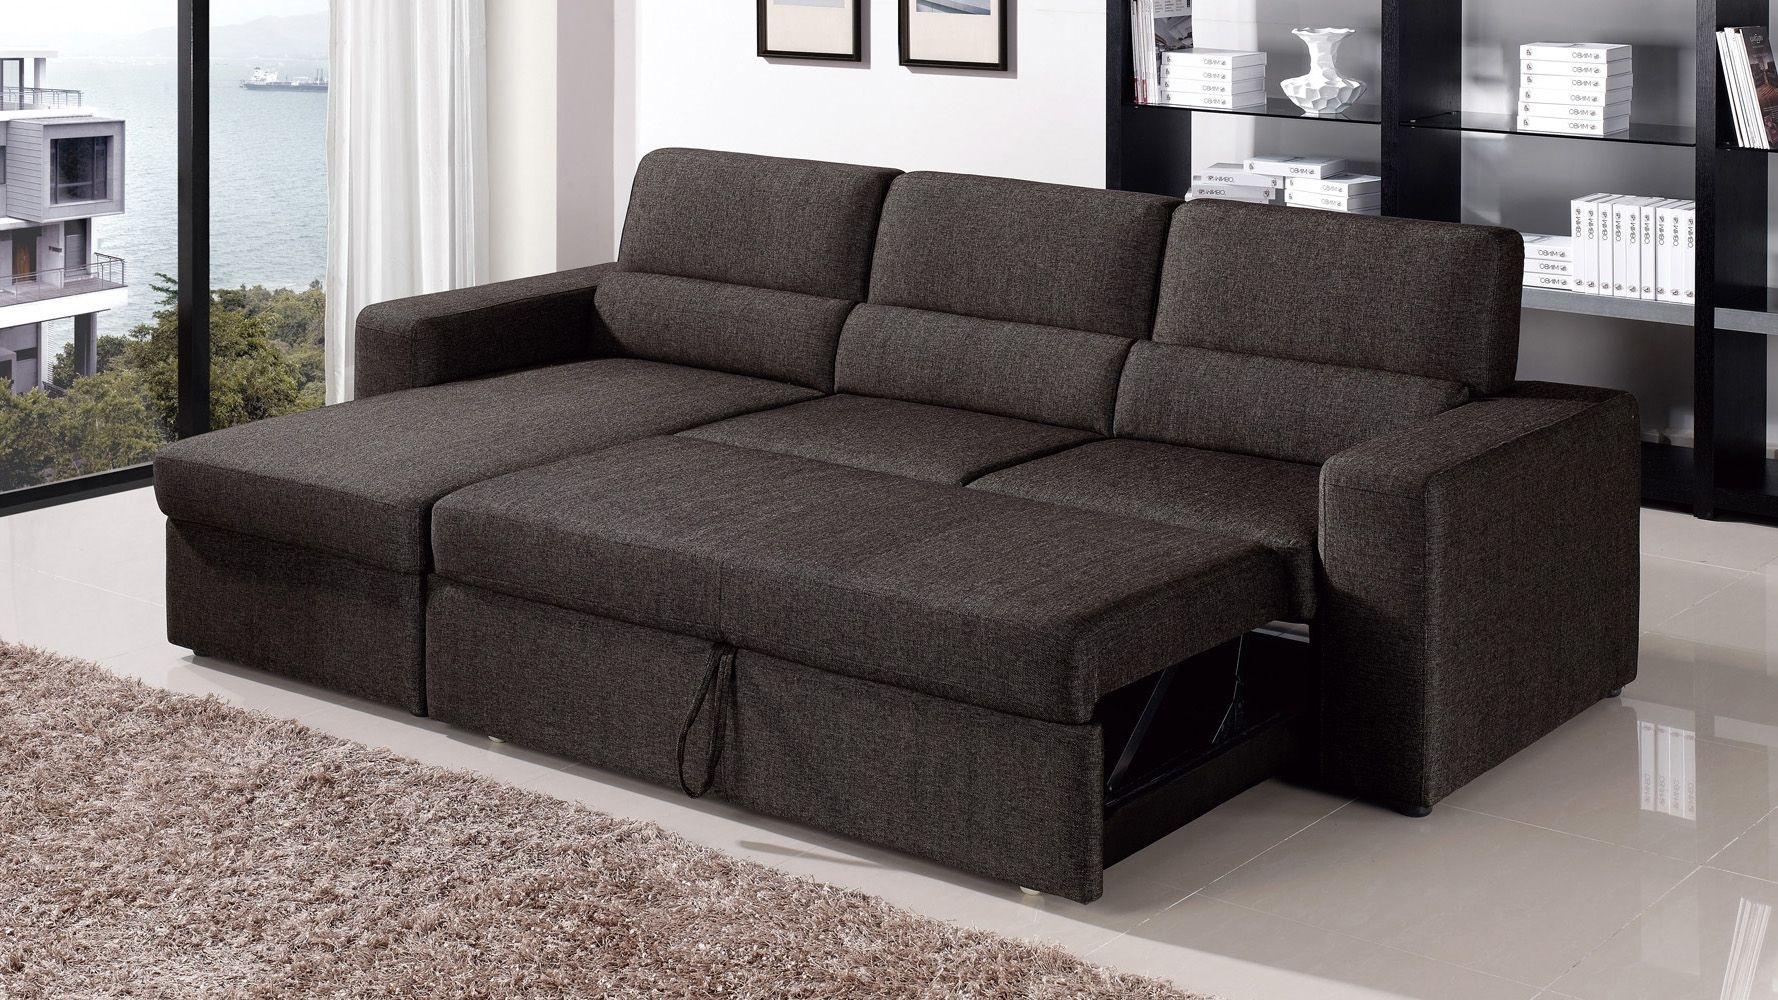 15 Best Collection Of Sleeper Sofas With Chaise With Regard To Most Recent Taren Reversible Sofa/chaise Sleeper Sectionals With Storage Ottoman (View 17 of 20)